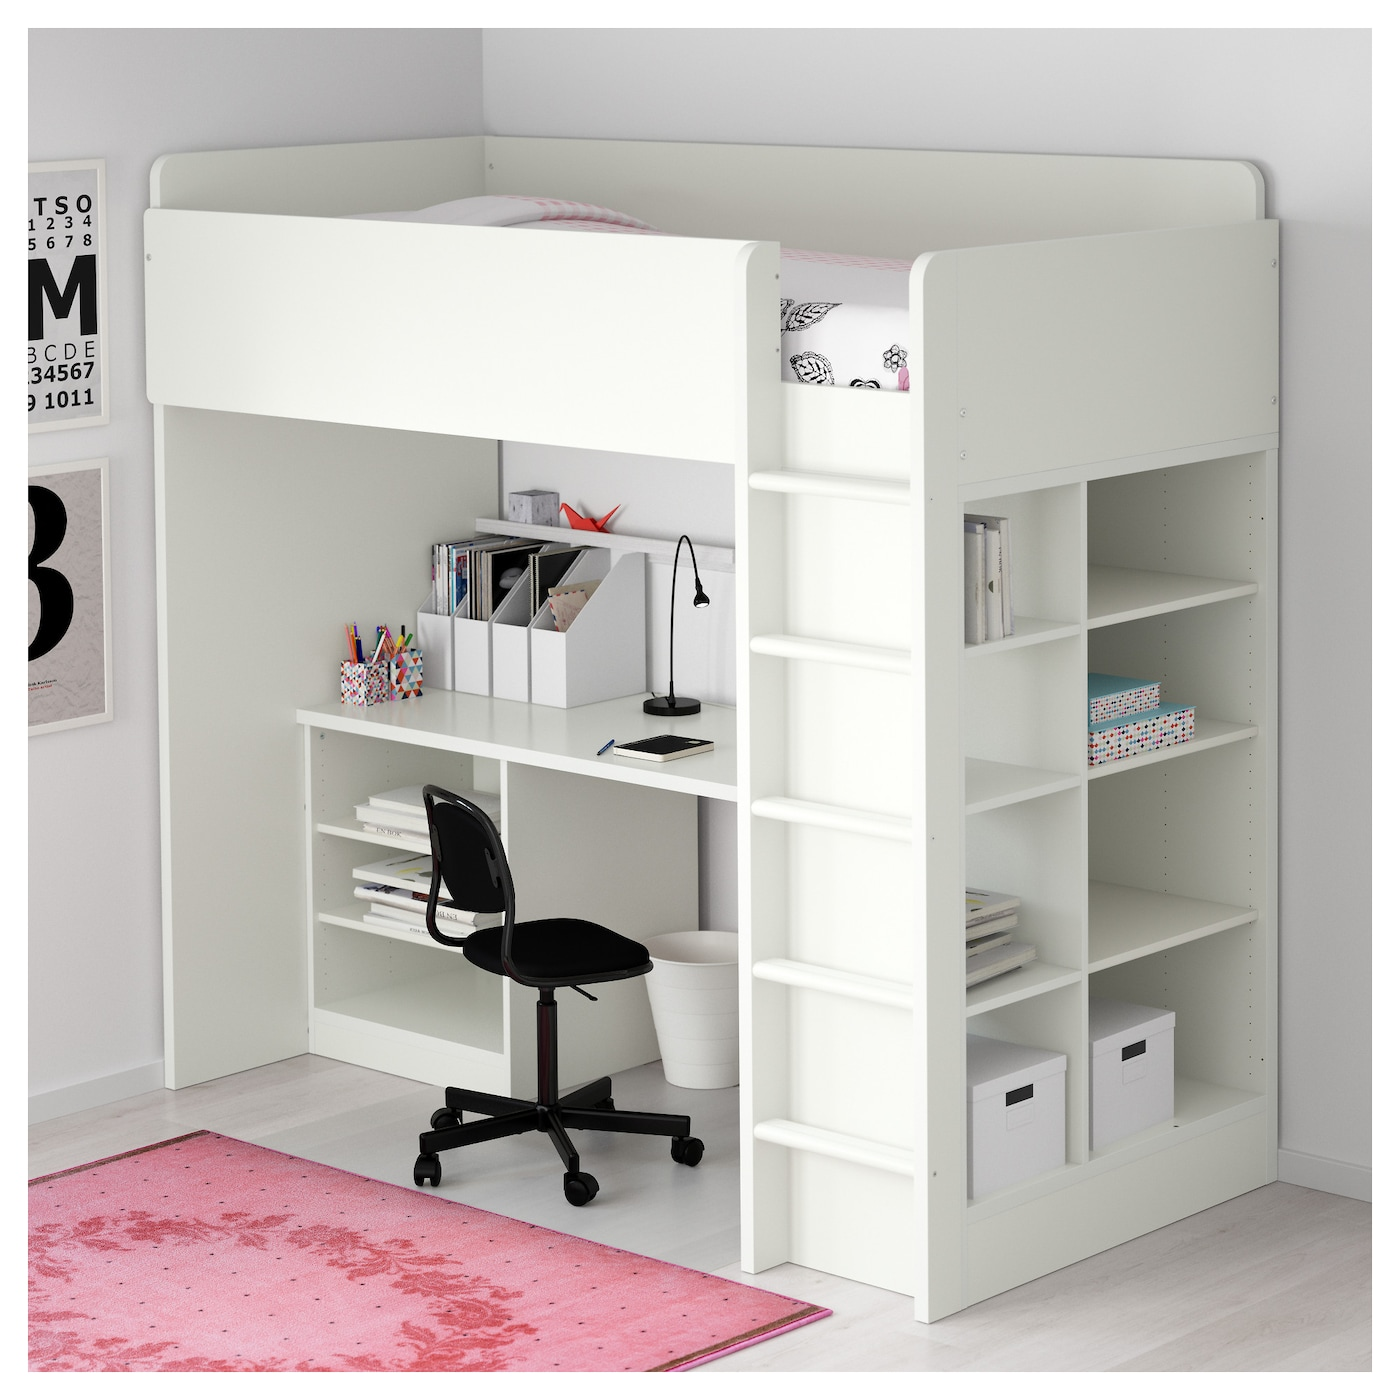 stuva loft bed combo w 2 shlvs 3 shlvs white 207x99x193 cm ikea. Black Bedroom Furniture Sets. Home Design Ideas